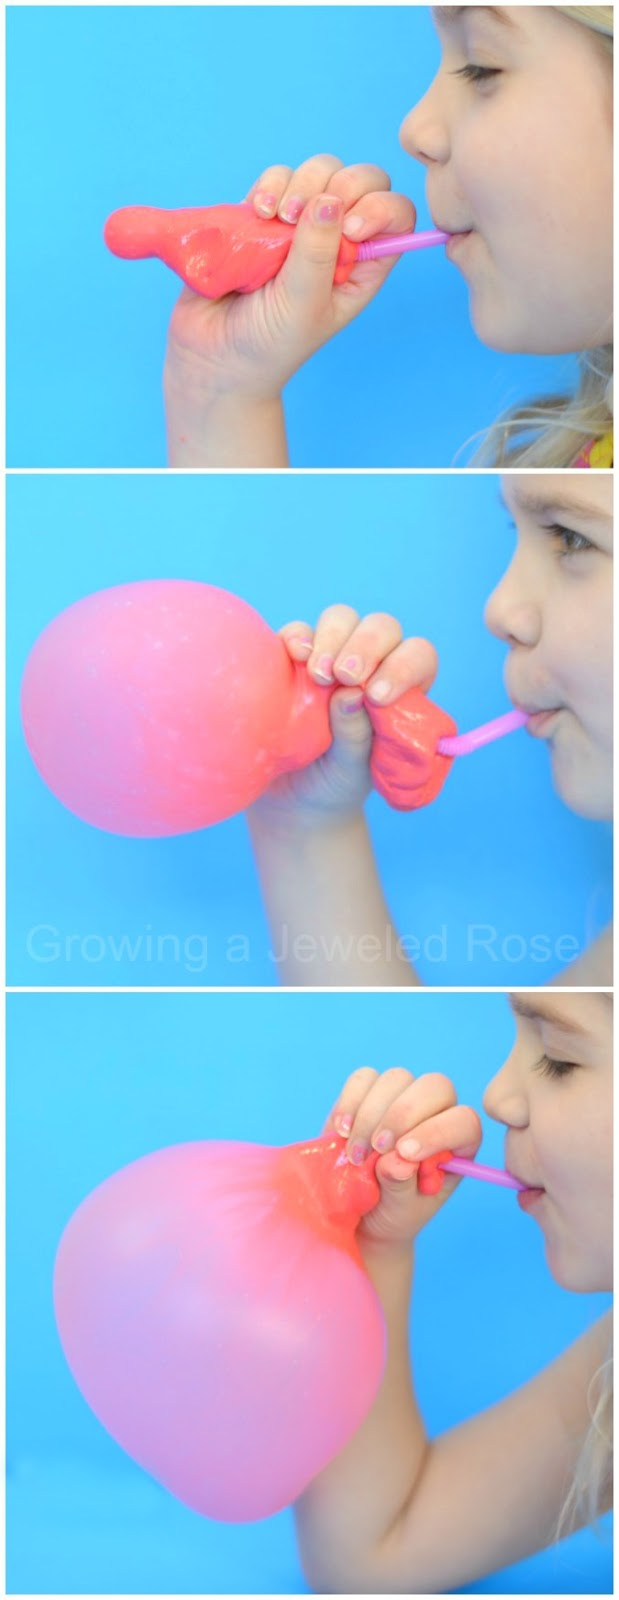 Bubblegum Slime Recipe This Stuff Is So Cool! It Looks, Feels, Smells